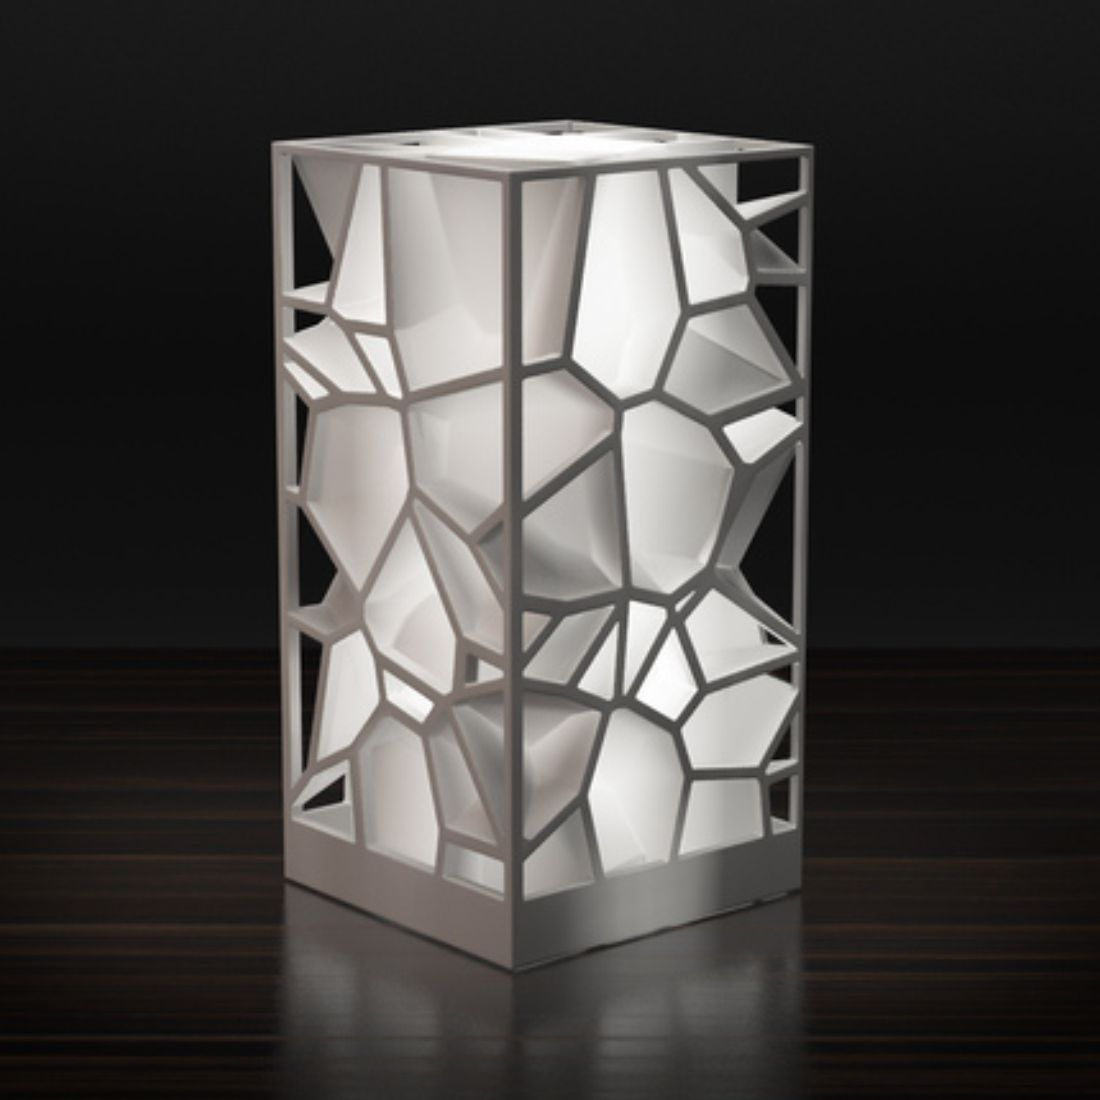 3d Printed Voronoi Lamp The Latest In Lighting And Interior Design